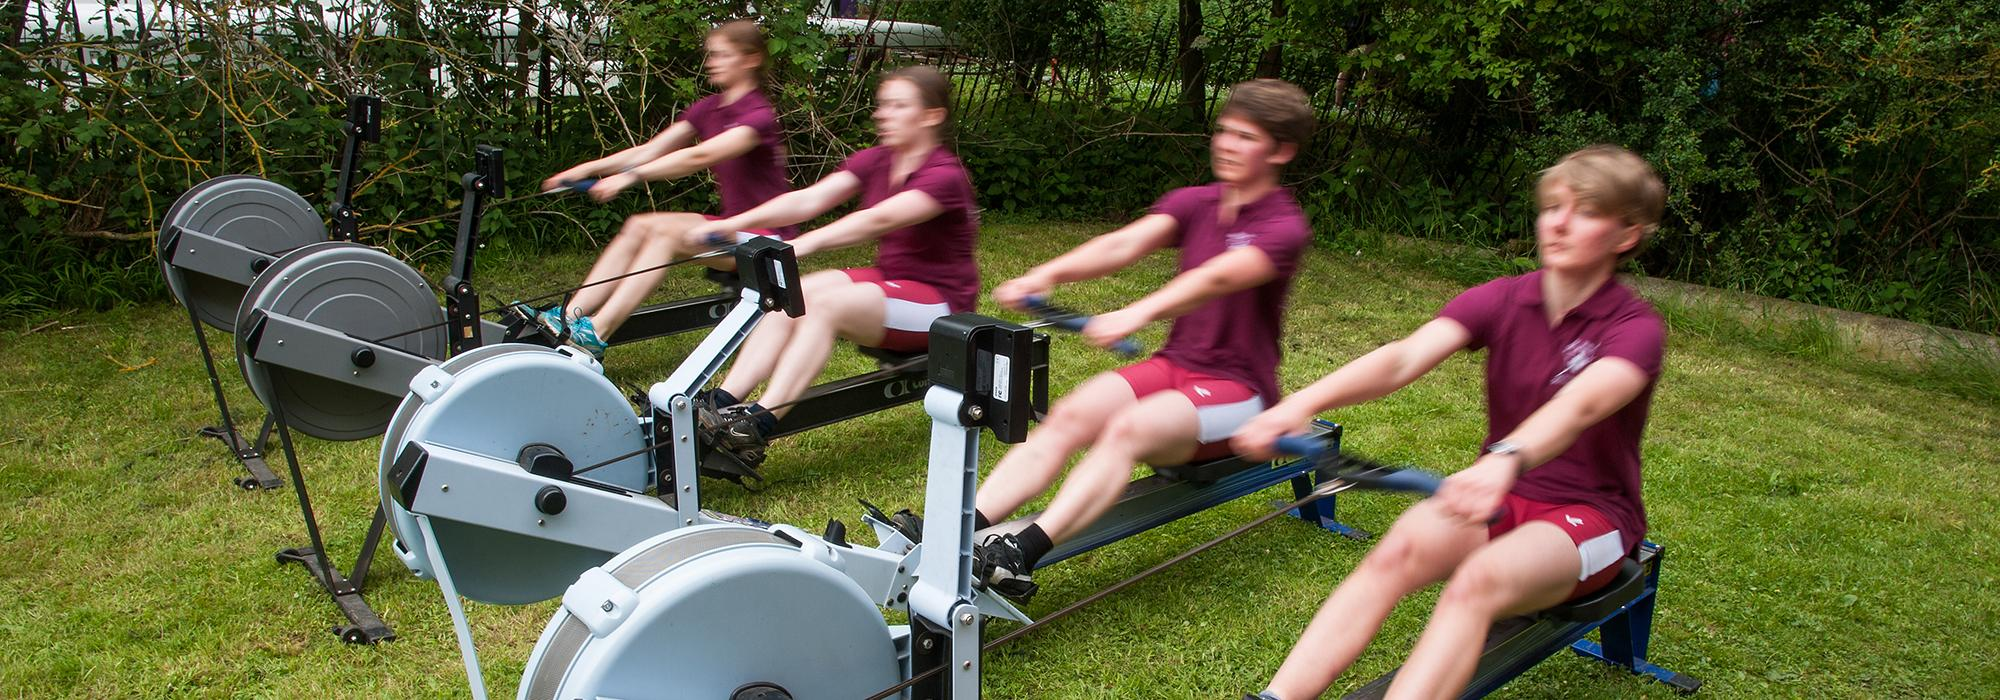 Rowers warming up on machines, Summer Eights 2014 - Photo: © John Cairns - www.johncairns.co.uk